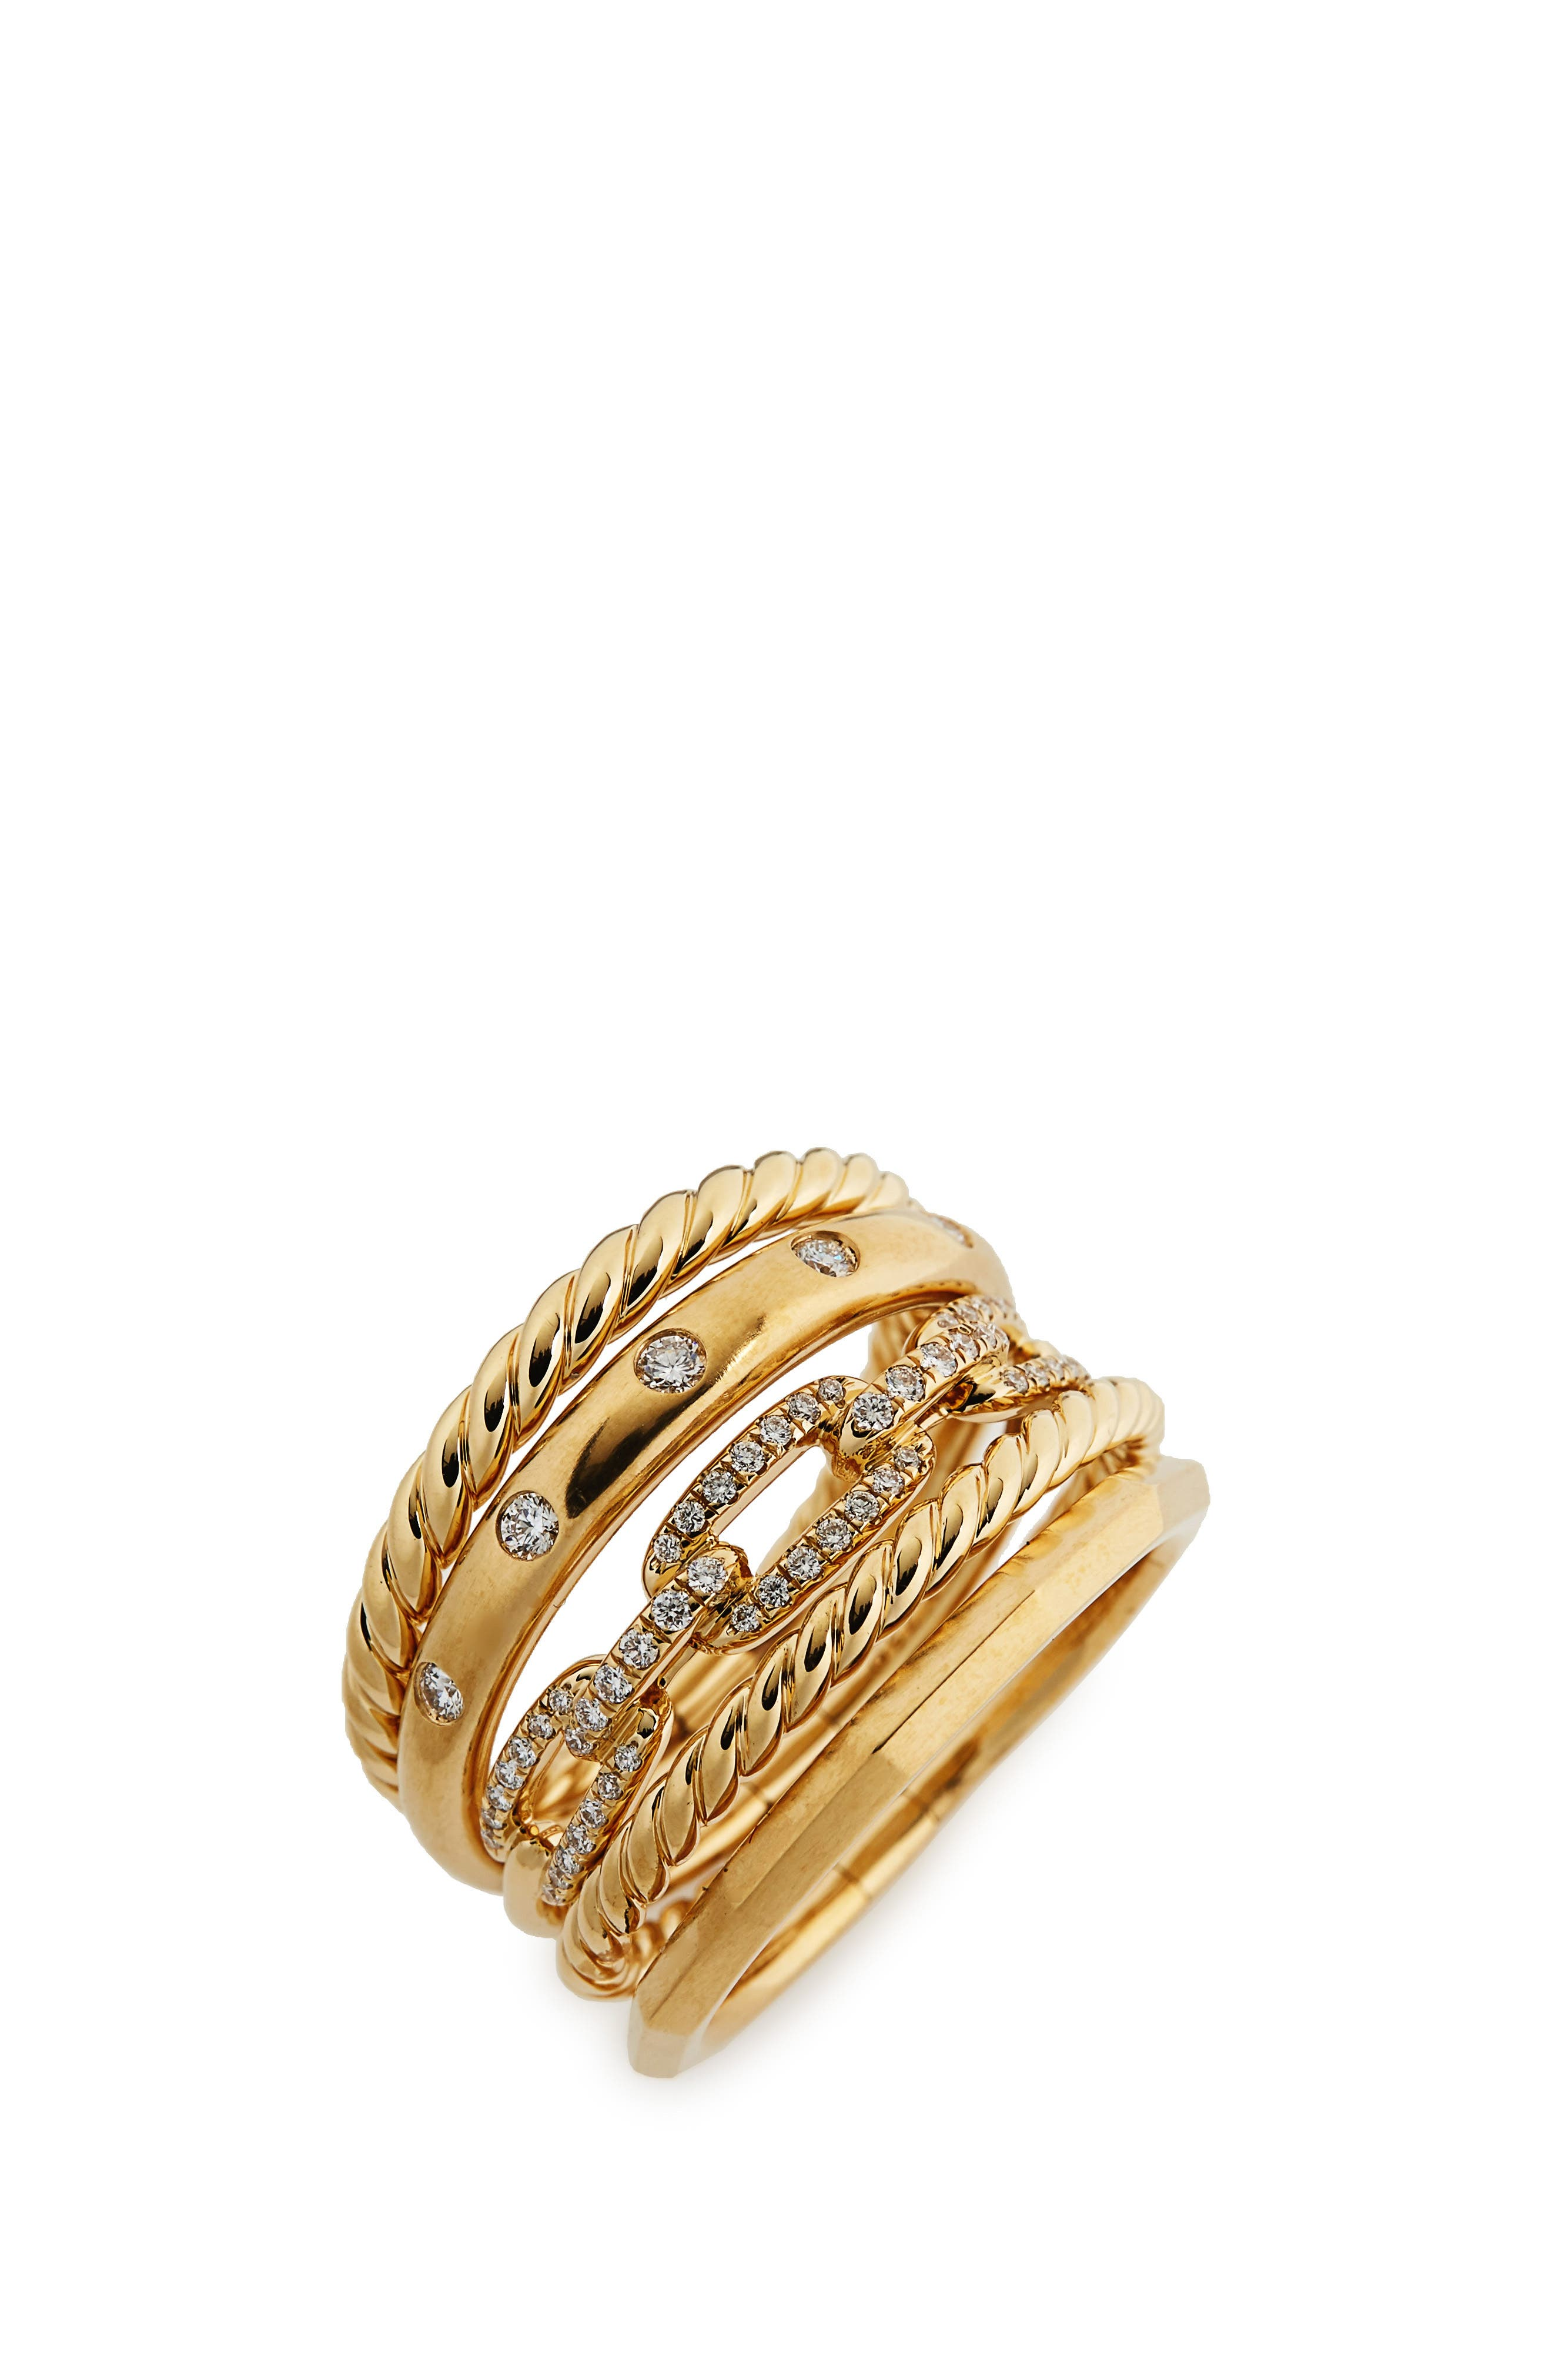 Stax Wide Ring with Diamonds in 18K Gold, 15mm,                         Main,                         color, Yellow Gold